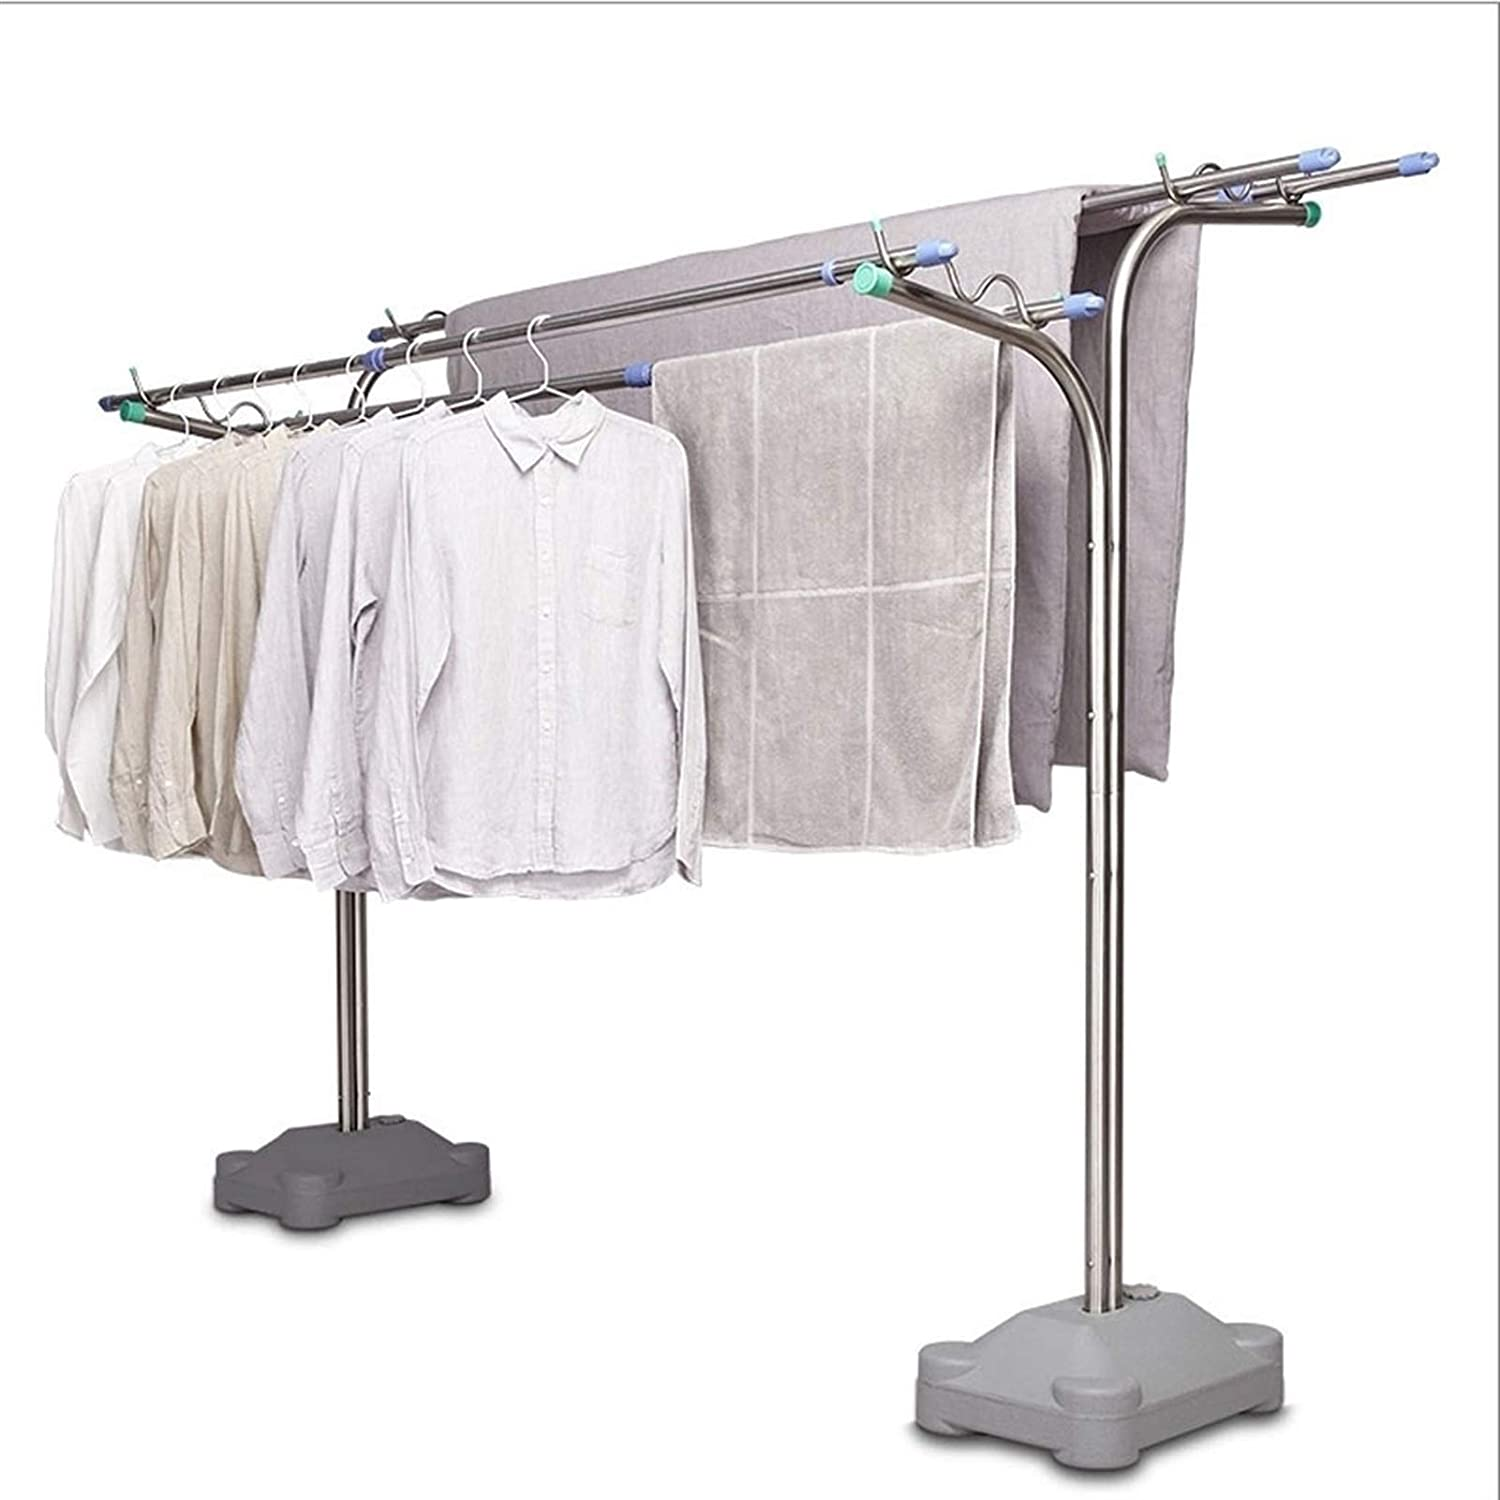 XIAOQIU Clothes Drying Rack Stainless for Steel Laundry Special sale item OFFicial store